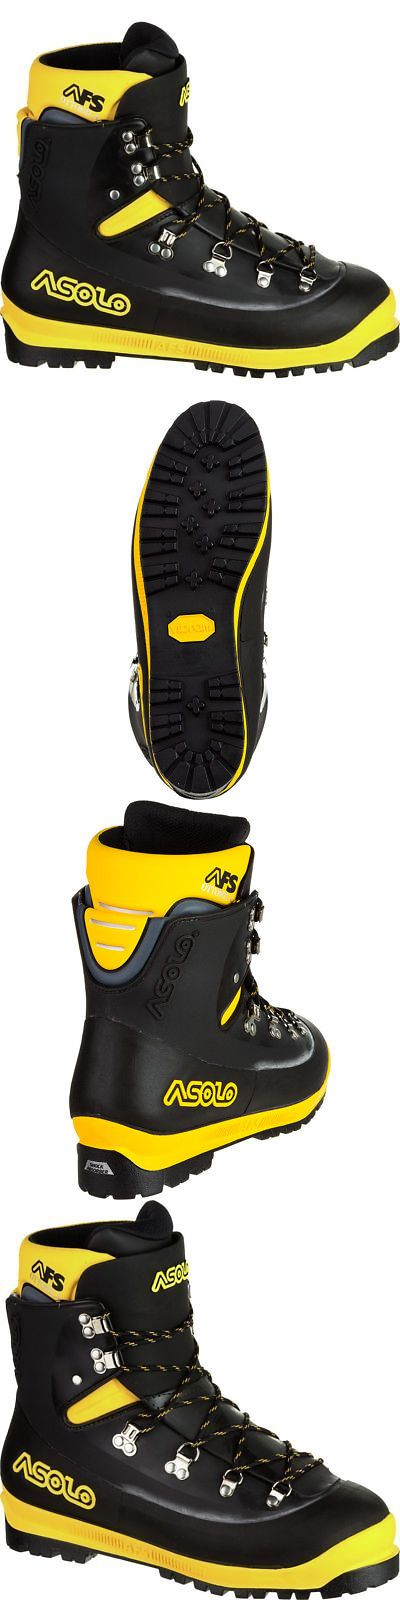 Men 158978: Asolo Afs 8000 Mountaineering Boot - Men S -> BUY IT NOW ONLY: $494.95 on eBay!